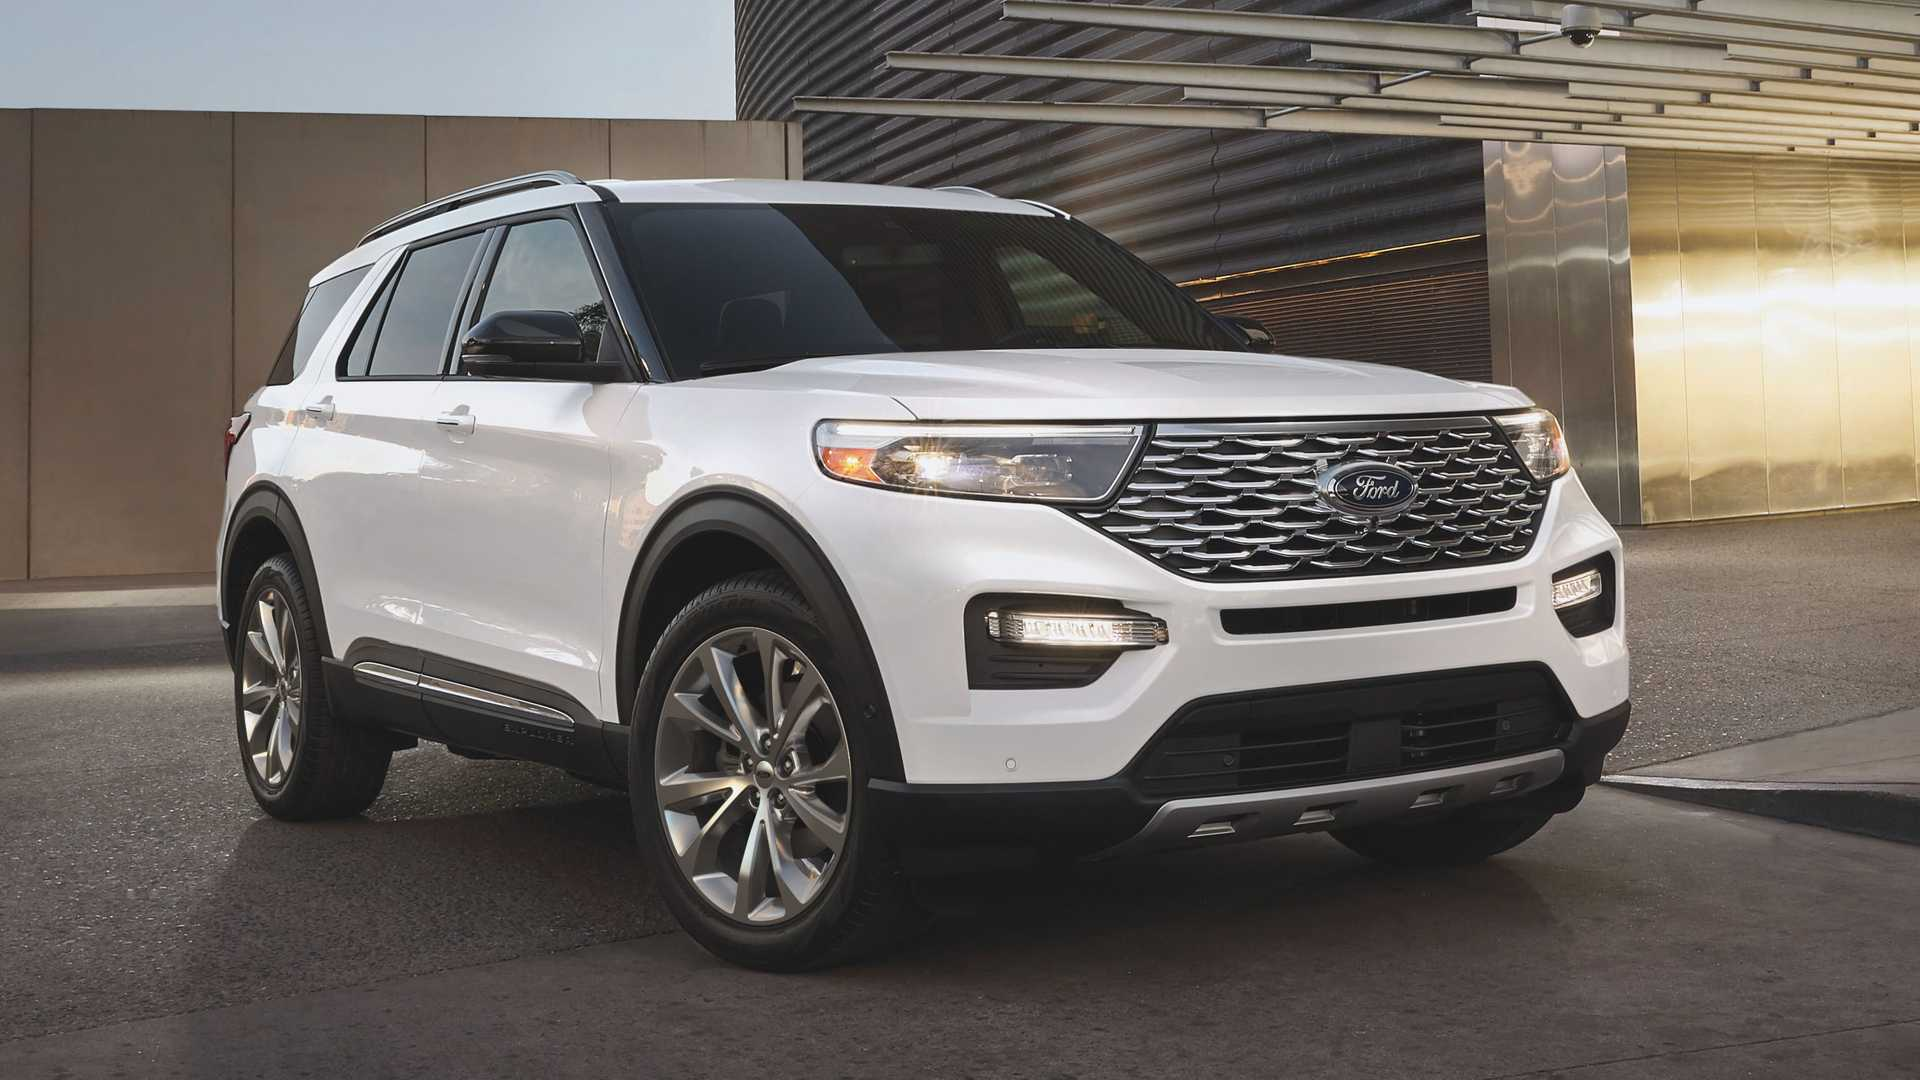 Ford just can't get enough of Explorer special editions. After debuting the King Ranch at the beginning of the year (see video), it has announced Timberline and three other variants available to order right now.